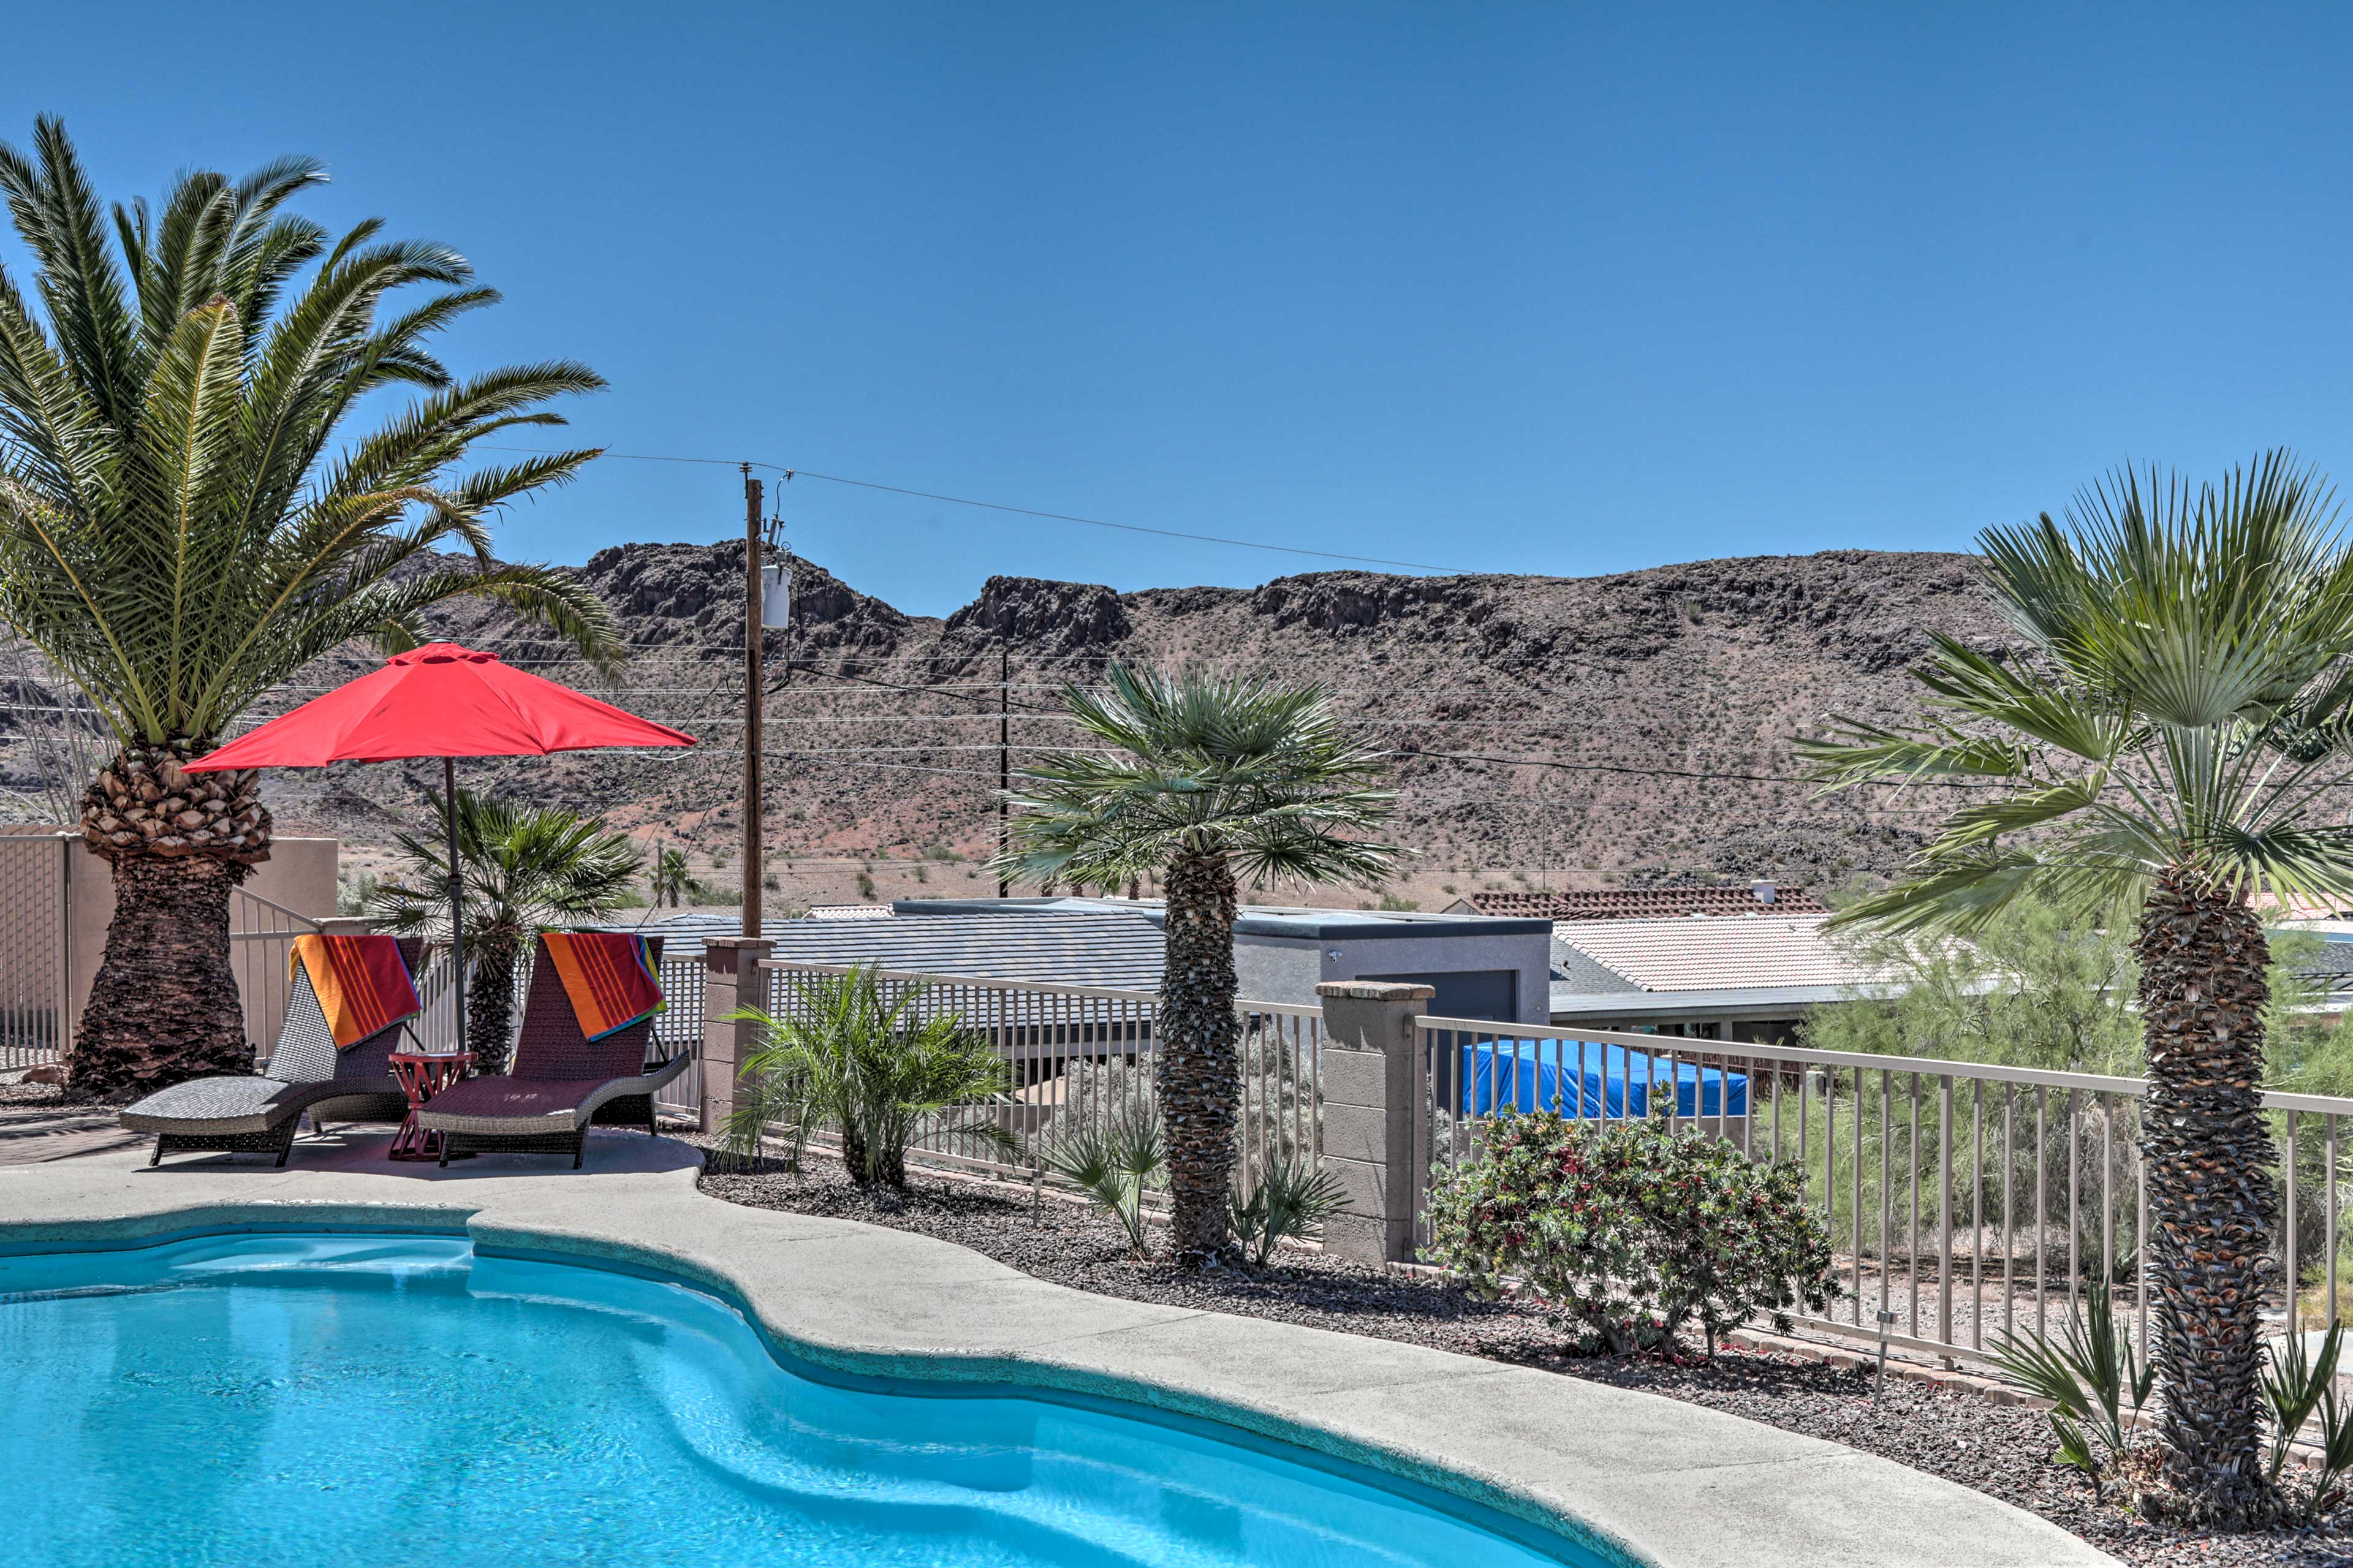 Head for the lake and stay at this private oasis with a heated pool and spa!